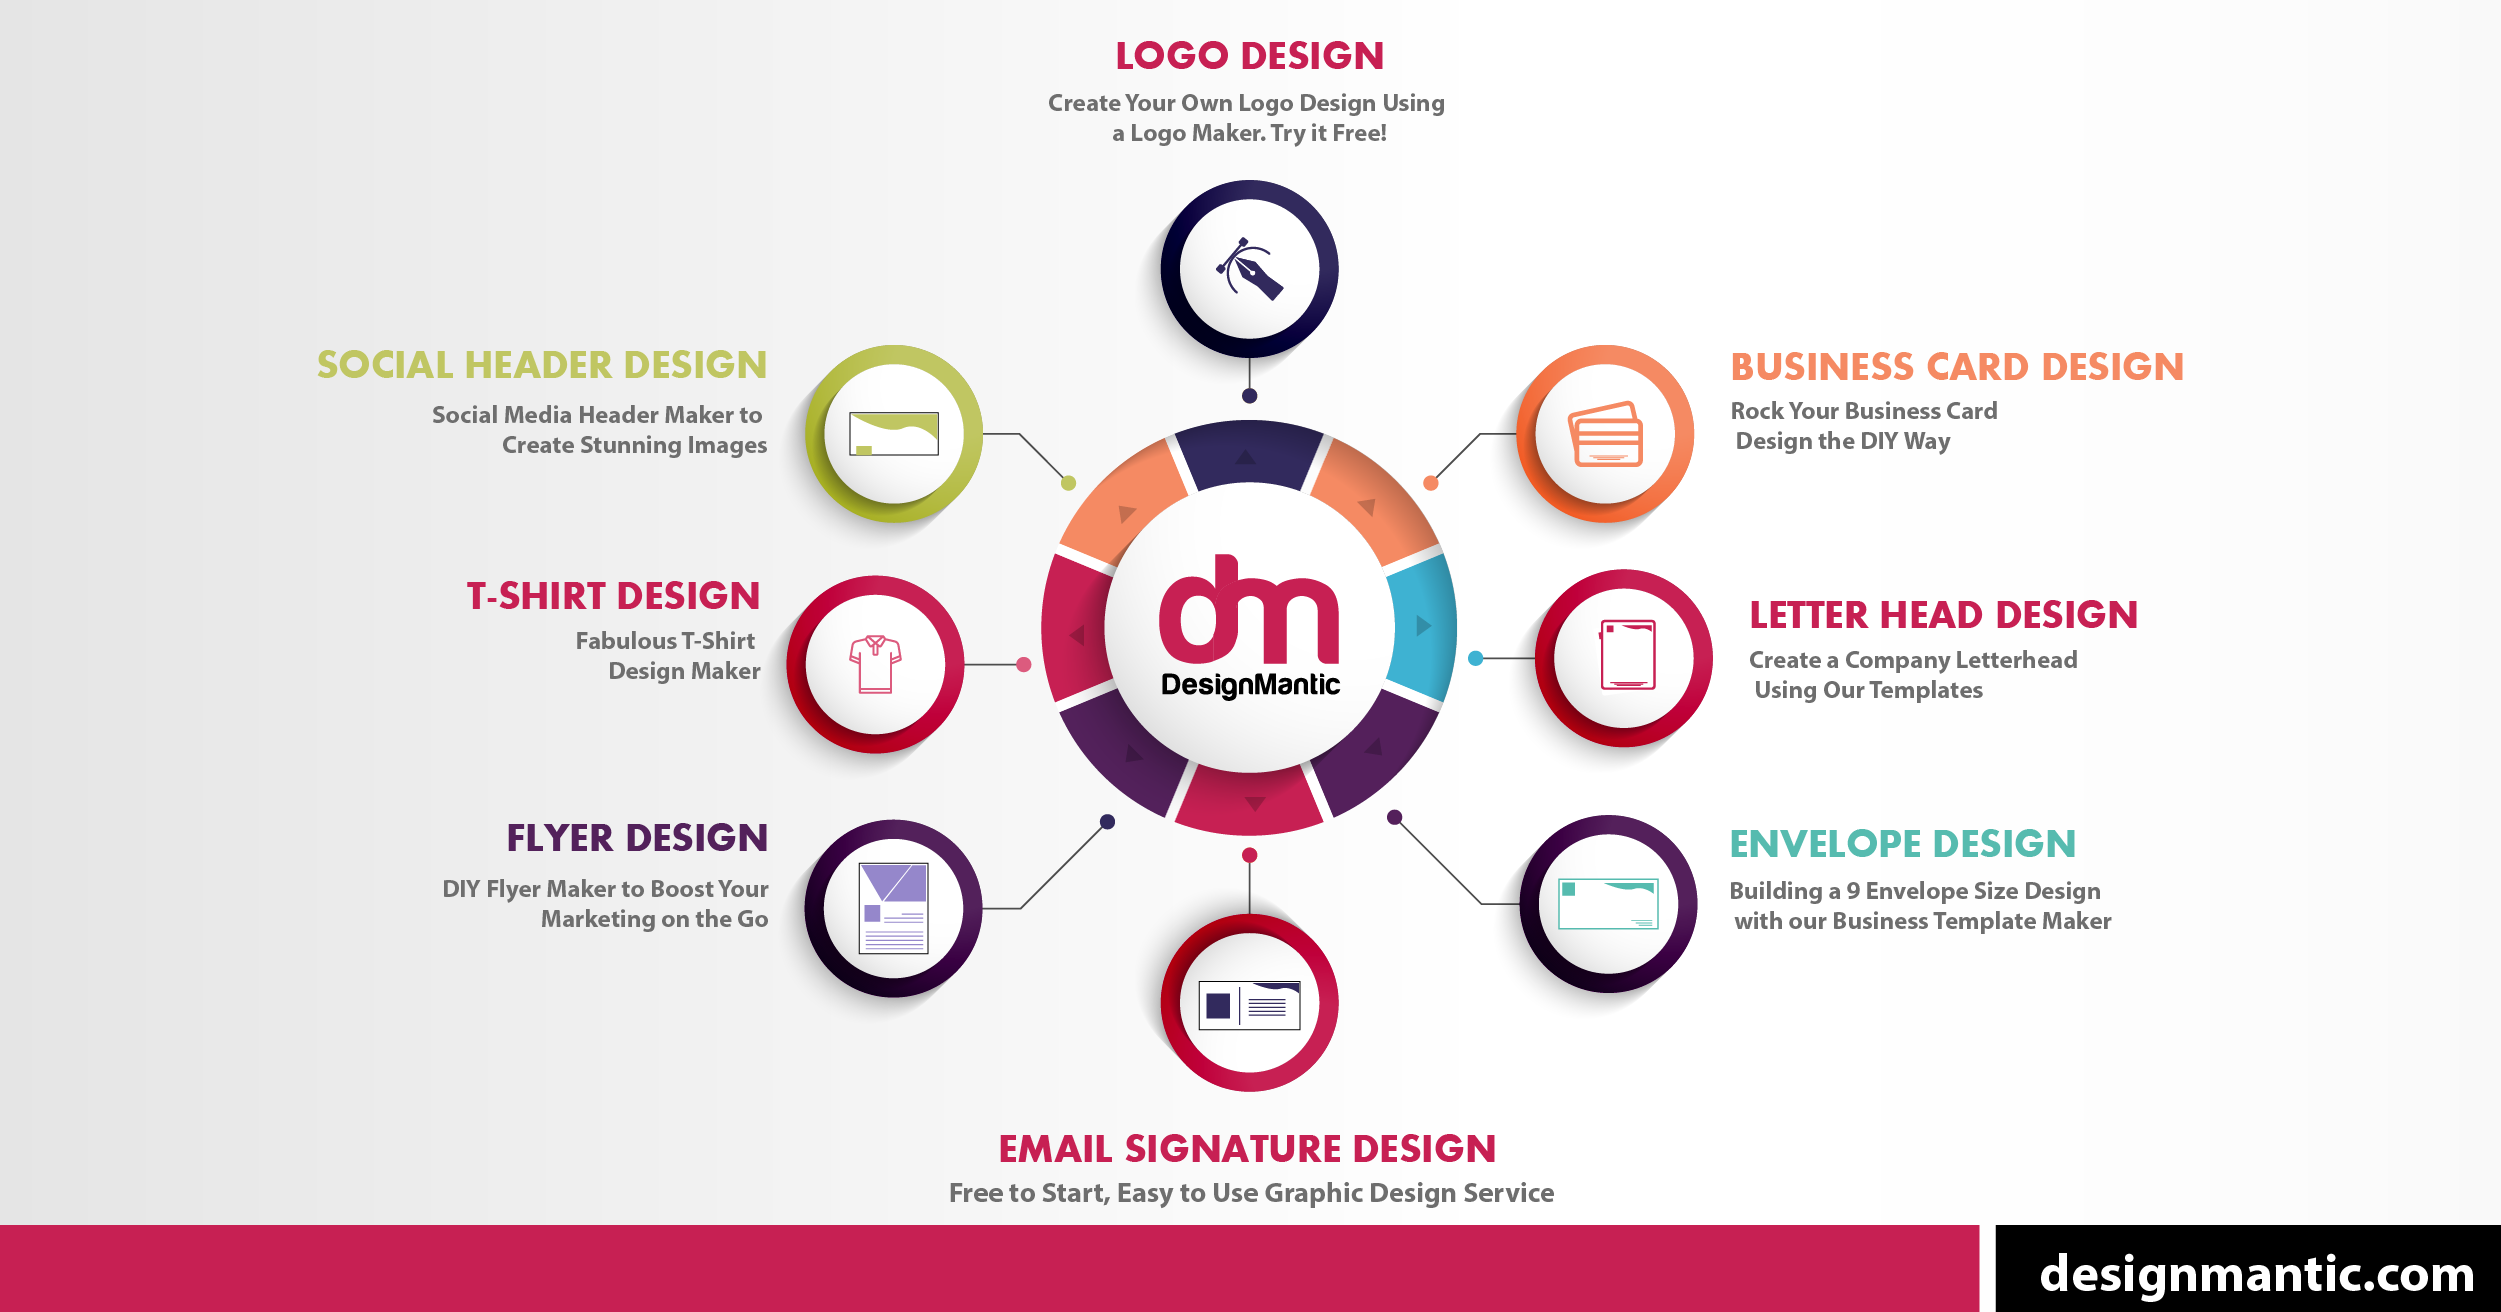 Free Logo Design & Logo Maker | DesignMantic: The Design Shop